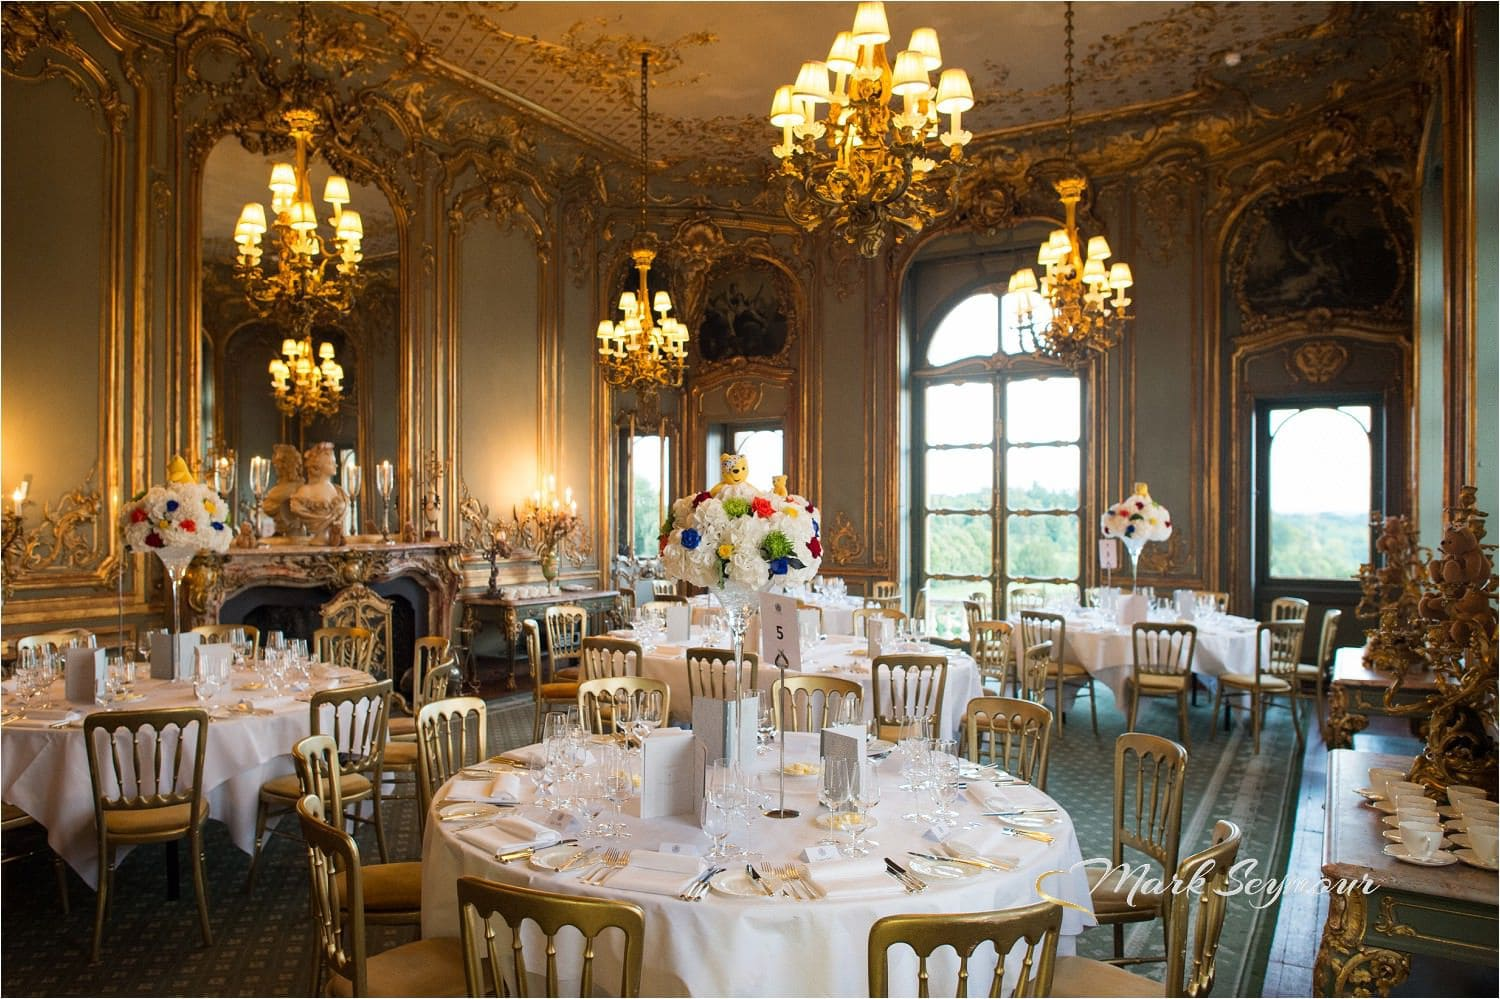 The French Dining Rooom